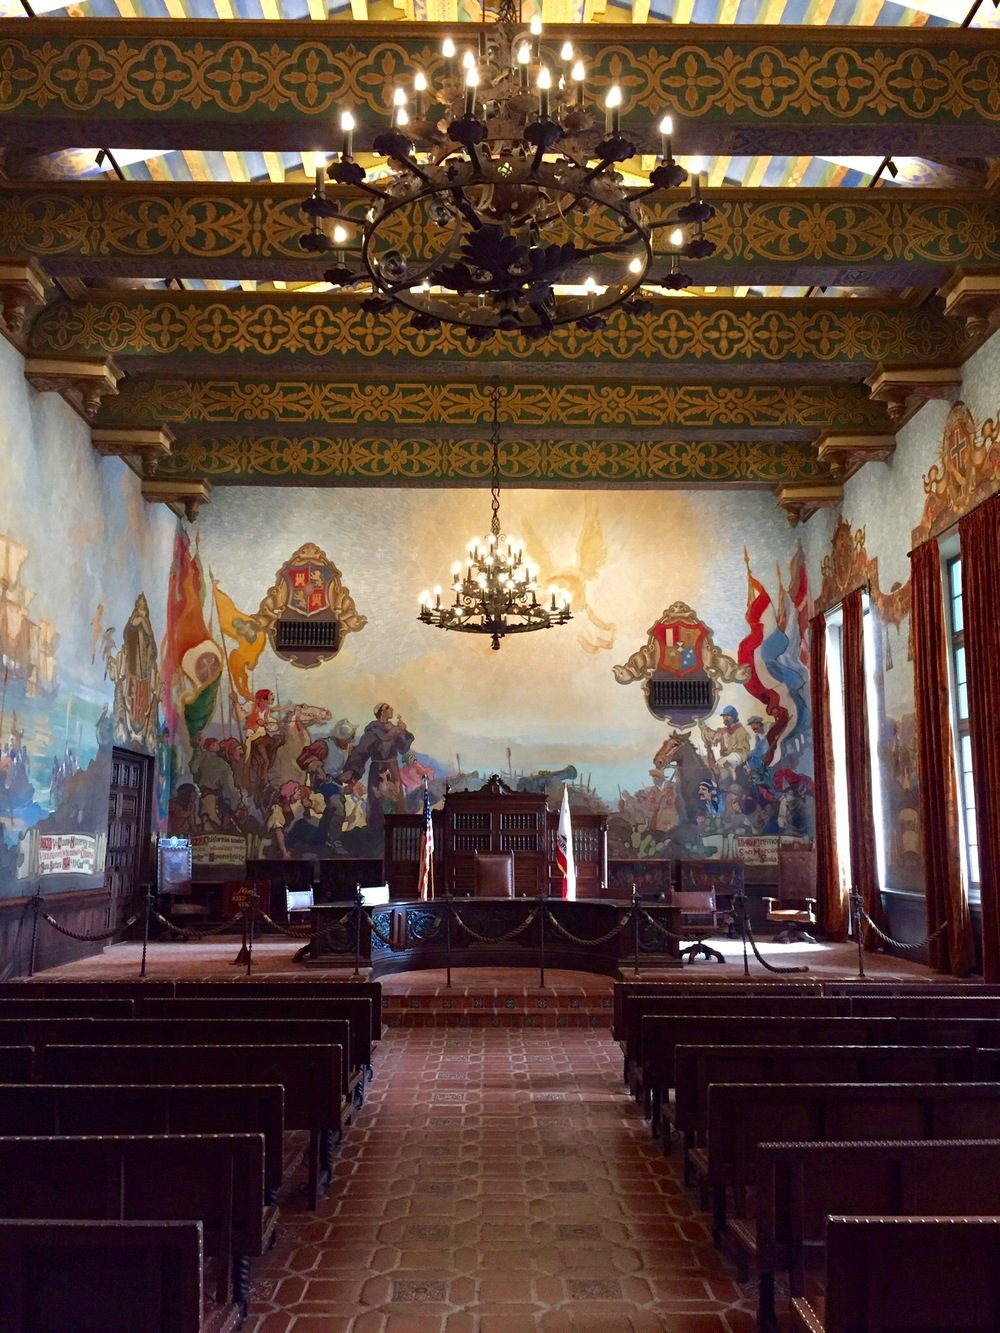 Inside the Santa Barbara Courthouse